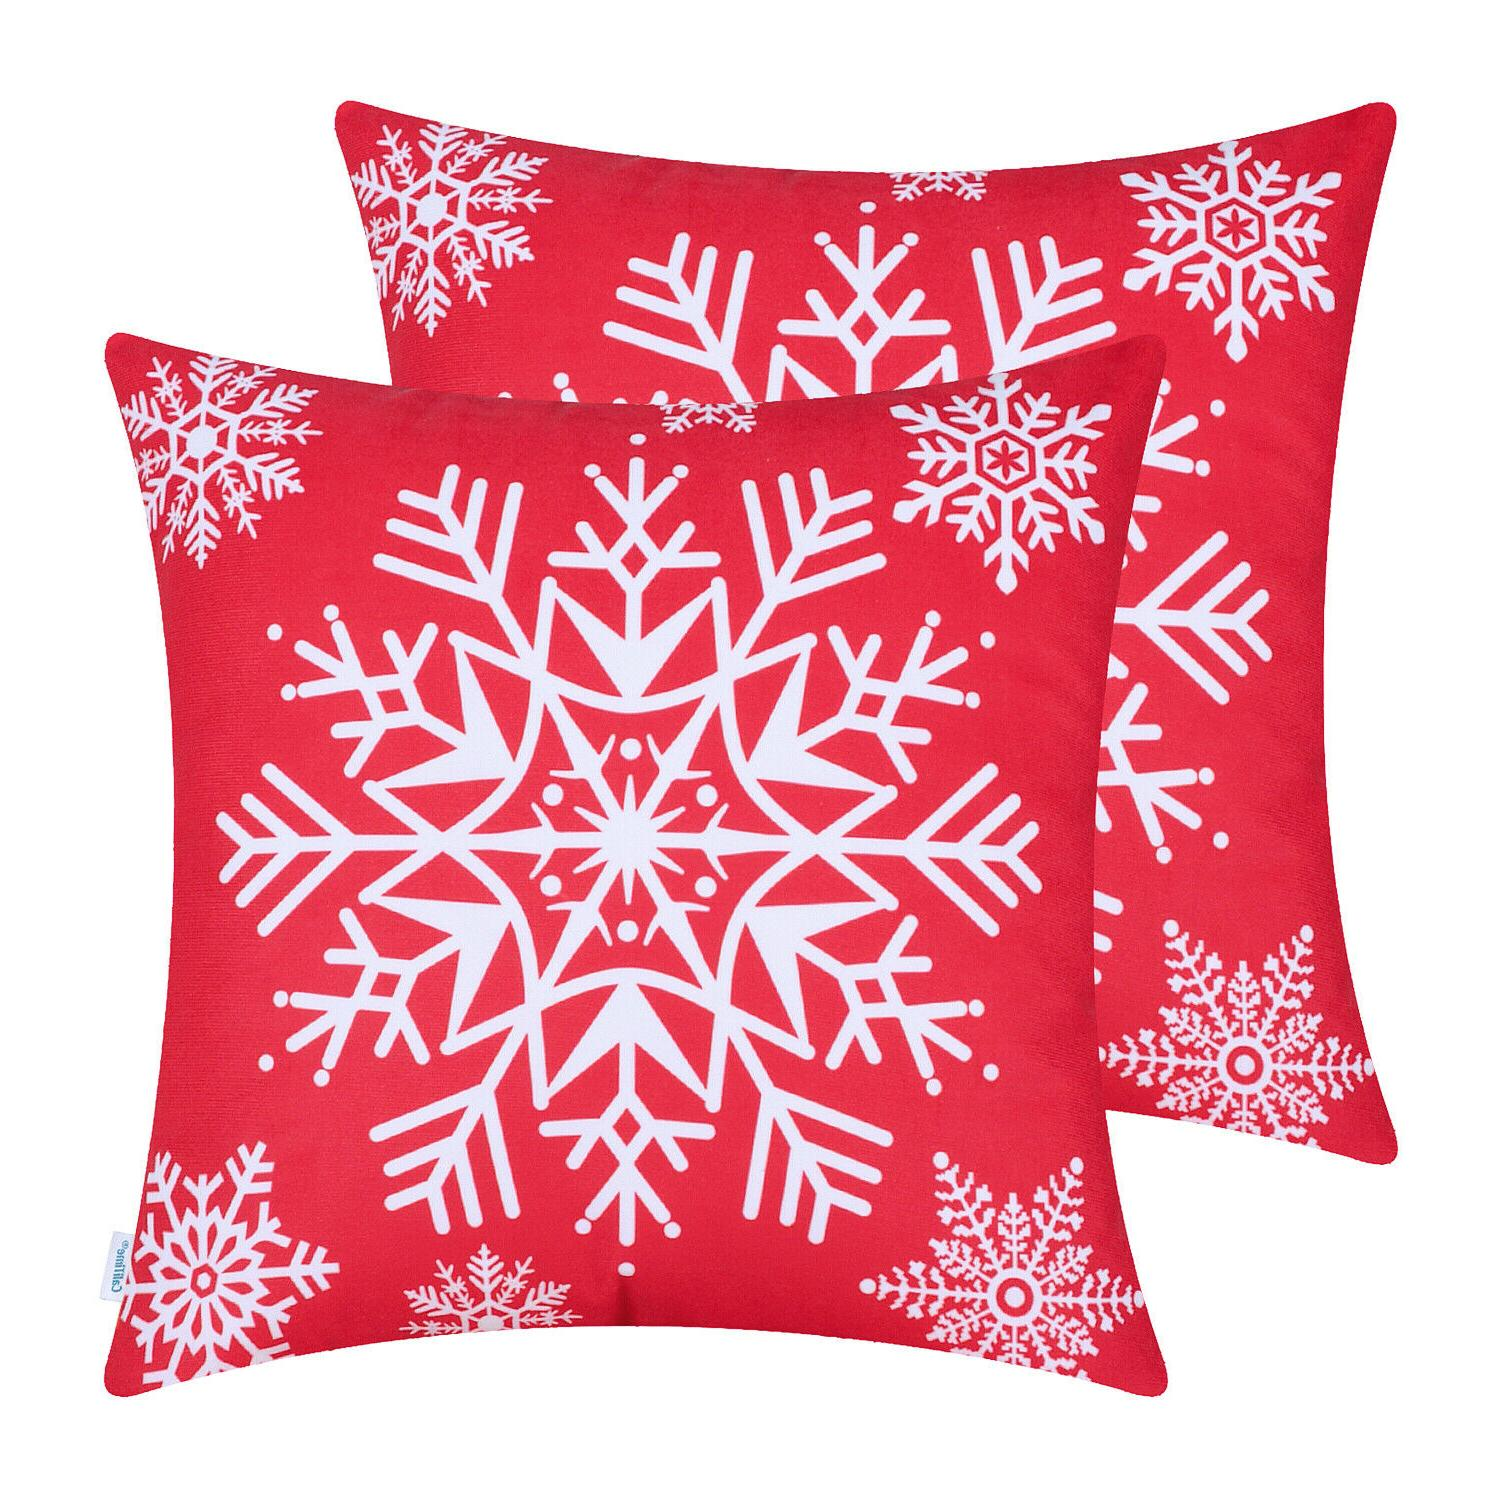 Pillows Covers Snowflakes